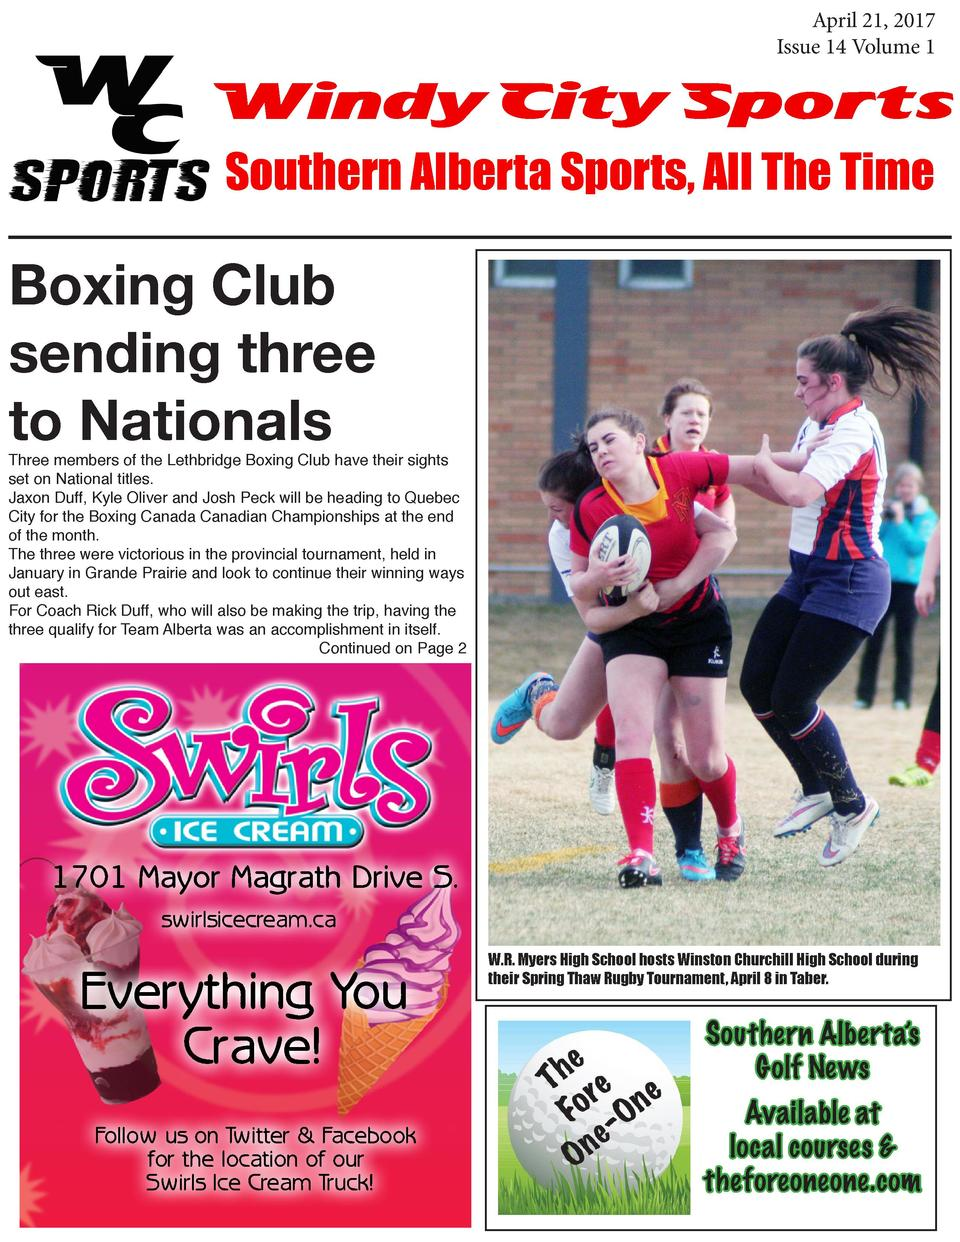 April 21, 2017 Issue 14 Volume 1  Windy City Sports Southern Alberta Sports, All The Time  Boxing Club sending three to Na...